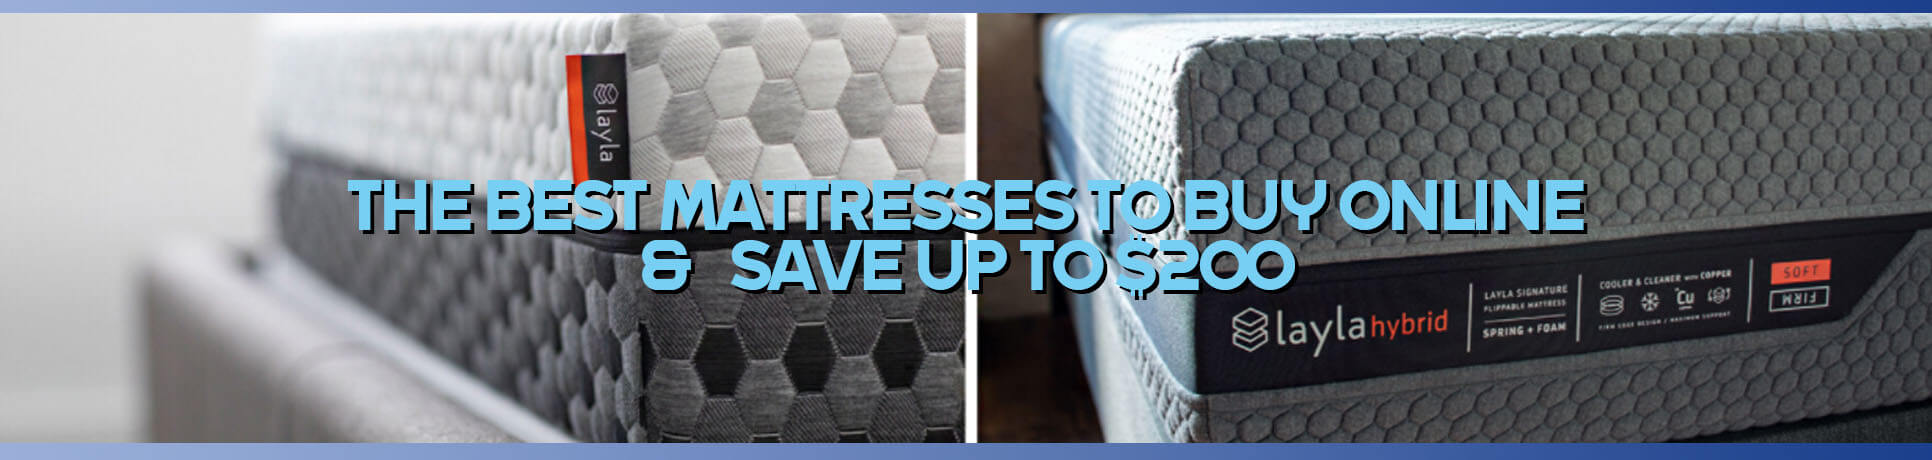 The Best Mattresses to Buy Online